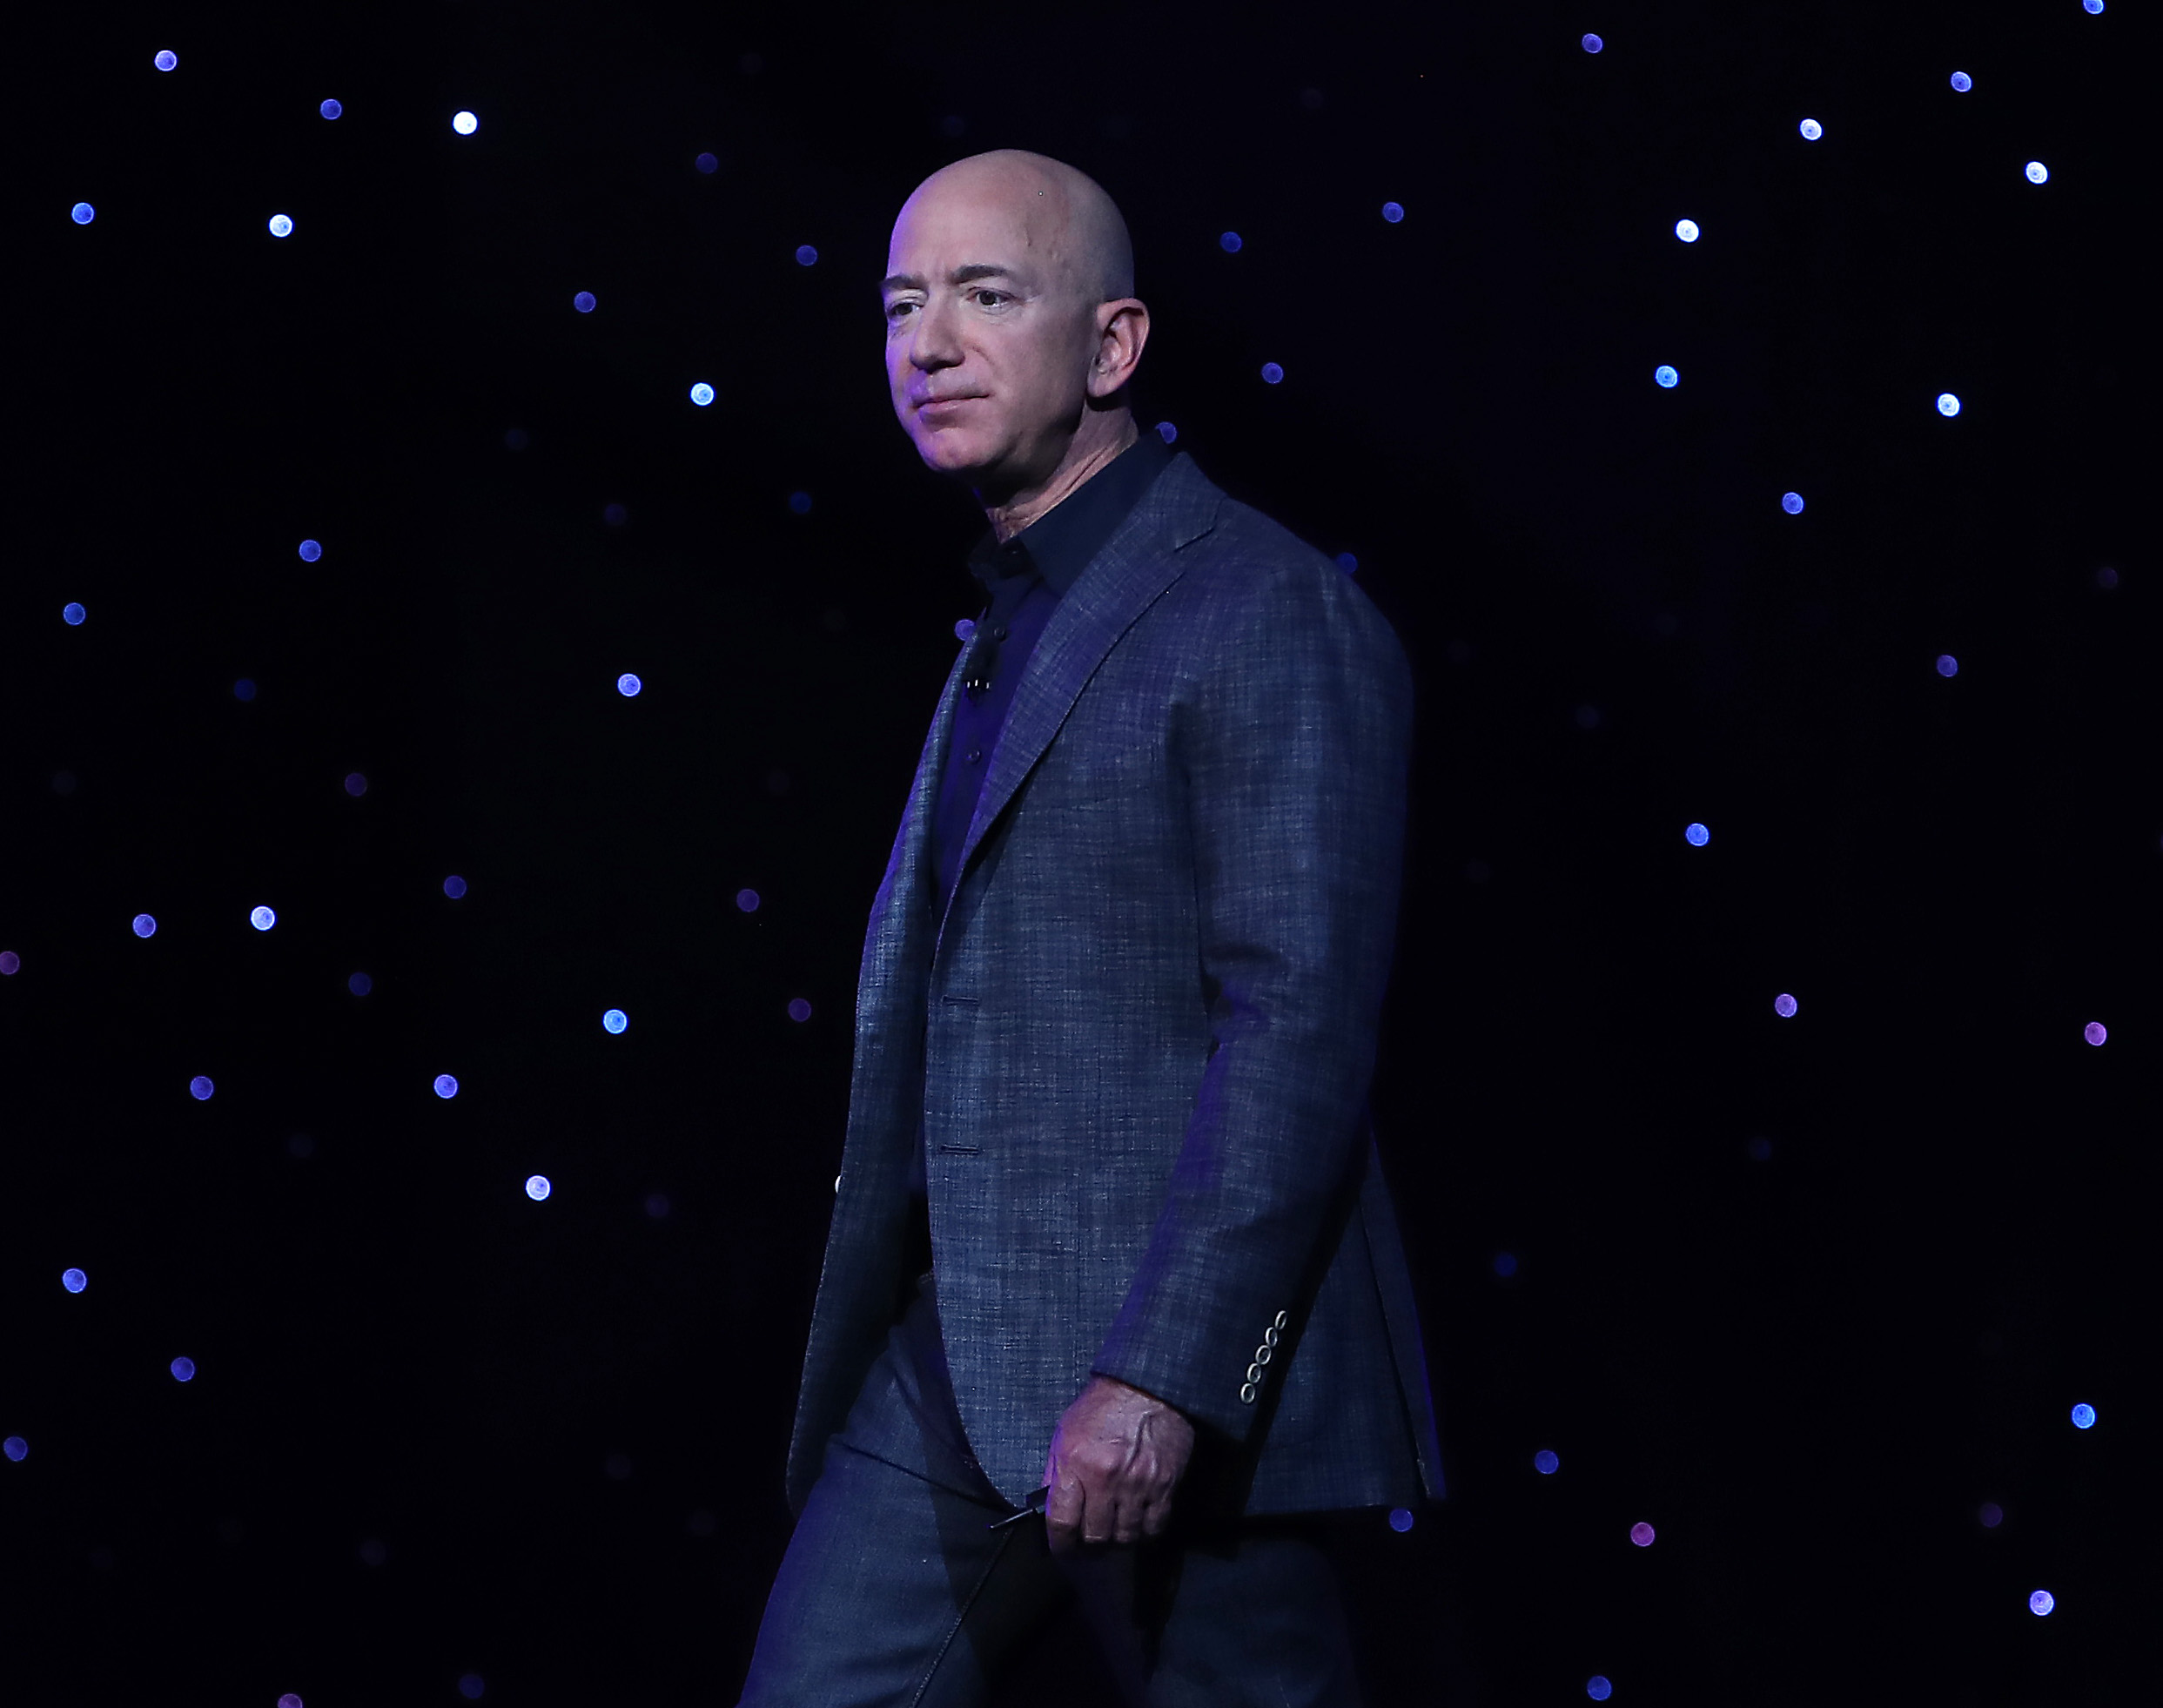 Elon Musk, Jeff Bezos and the Race to Own Space